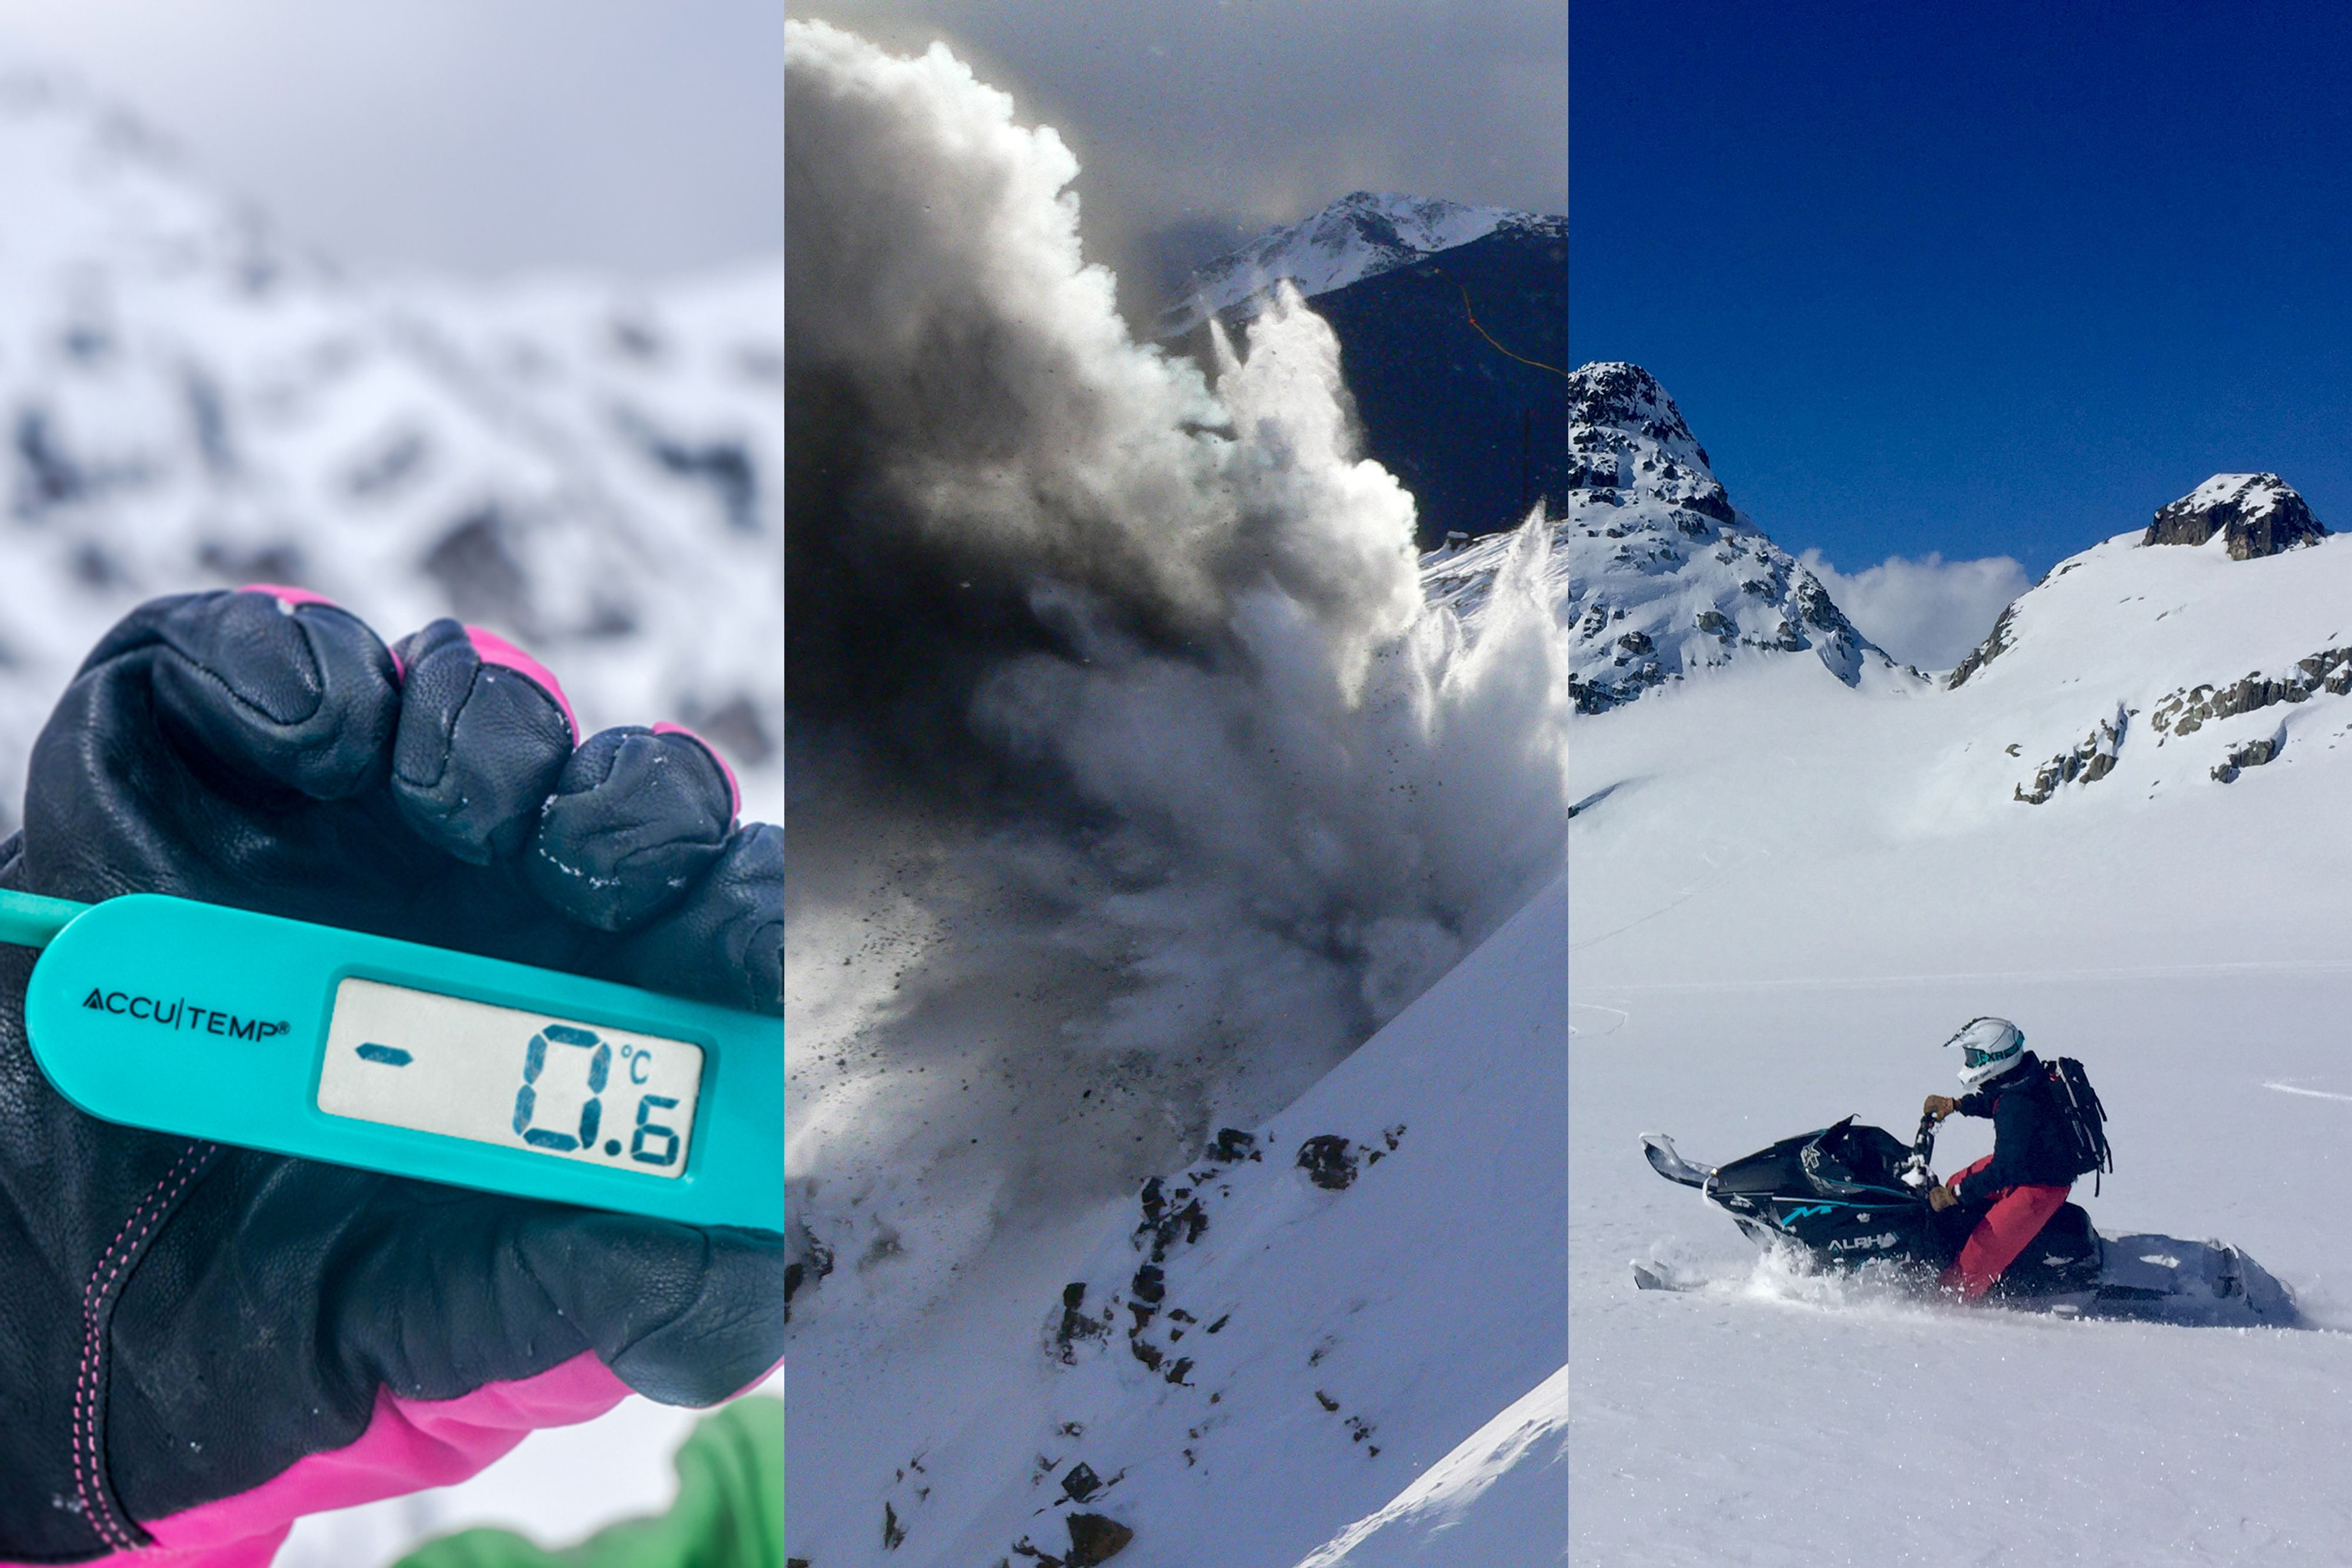 From left: A picture of a thermometer reading -0.6 celsius, explosives avalanche control, and a snowmobiler riding on a slope.